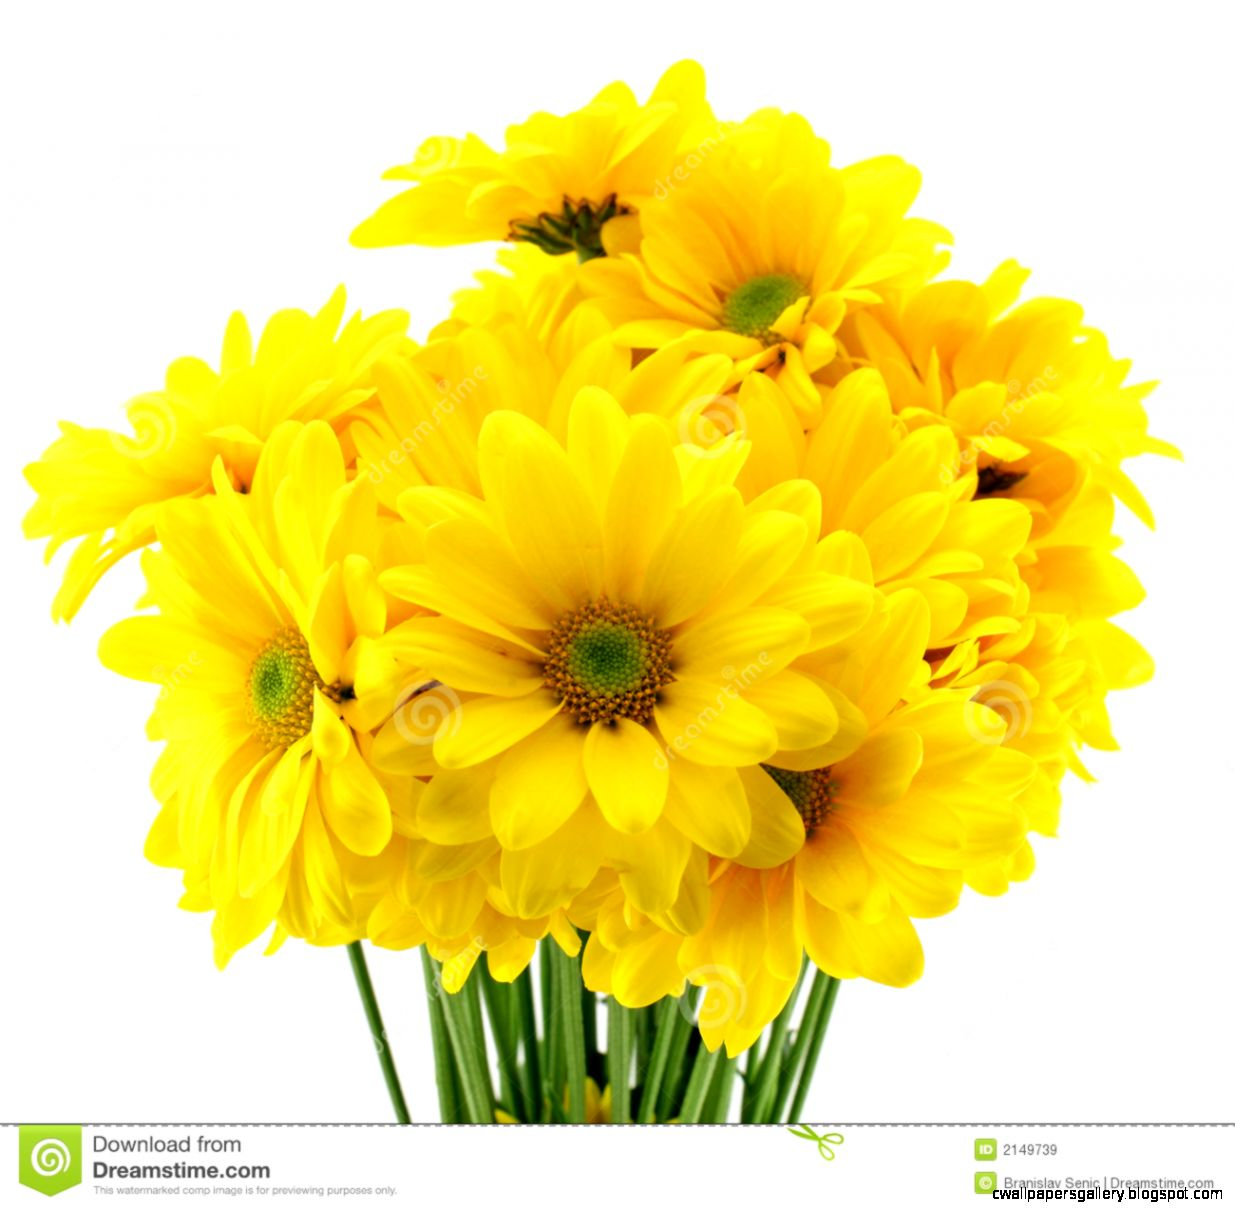 yellow flowers images 11